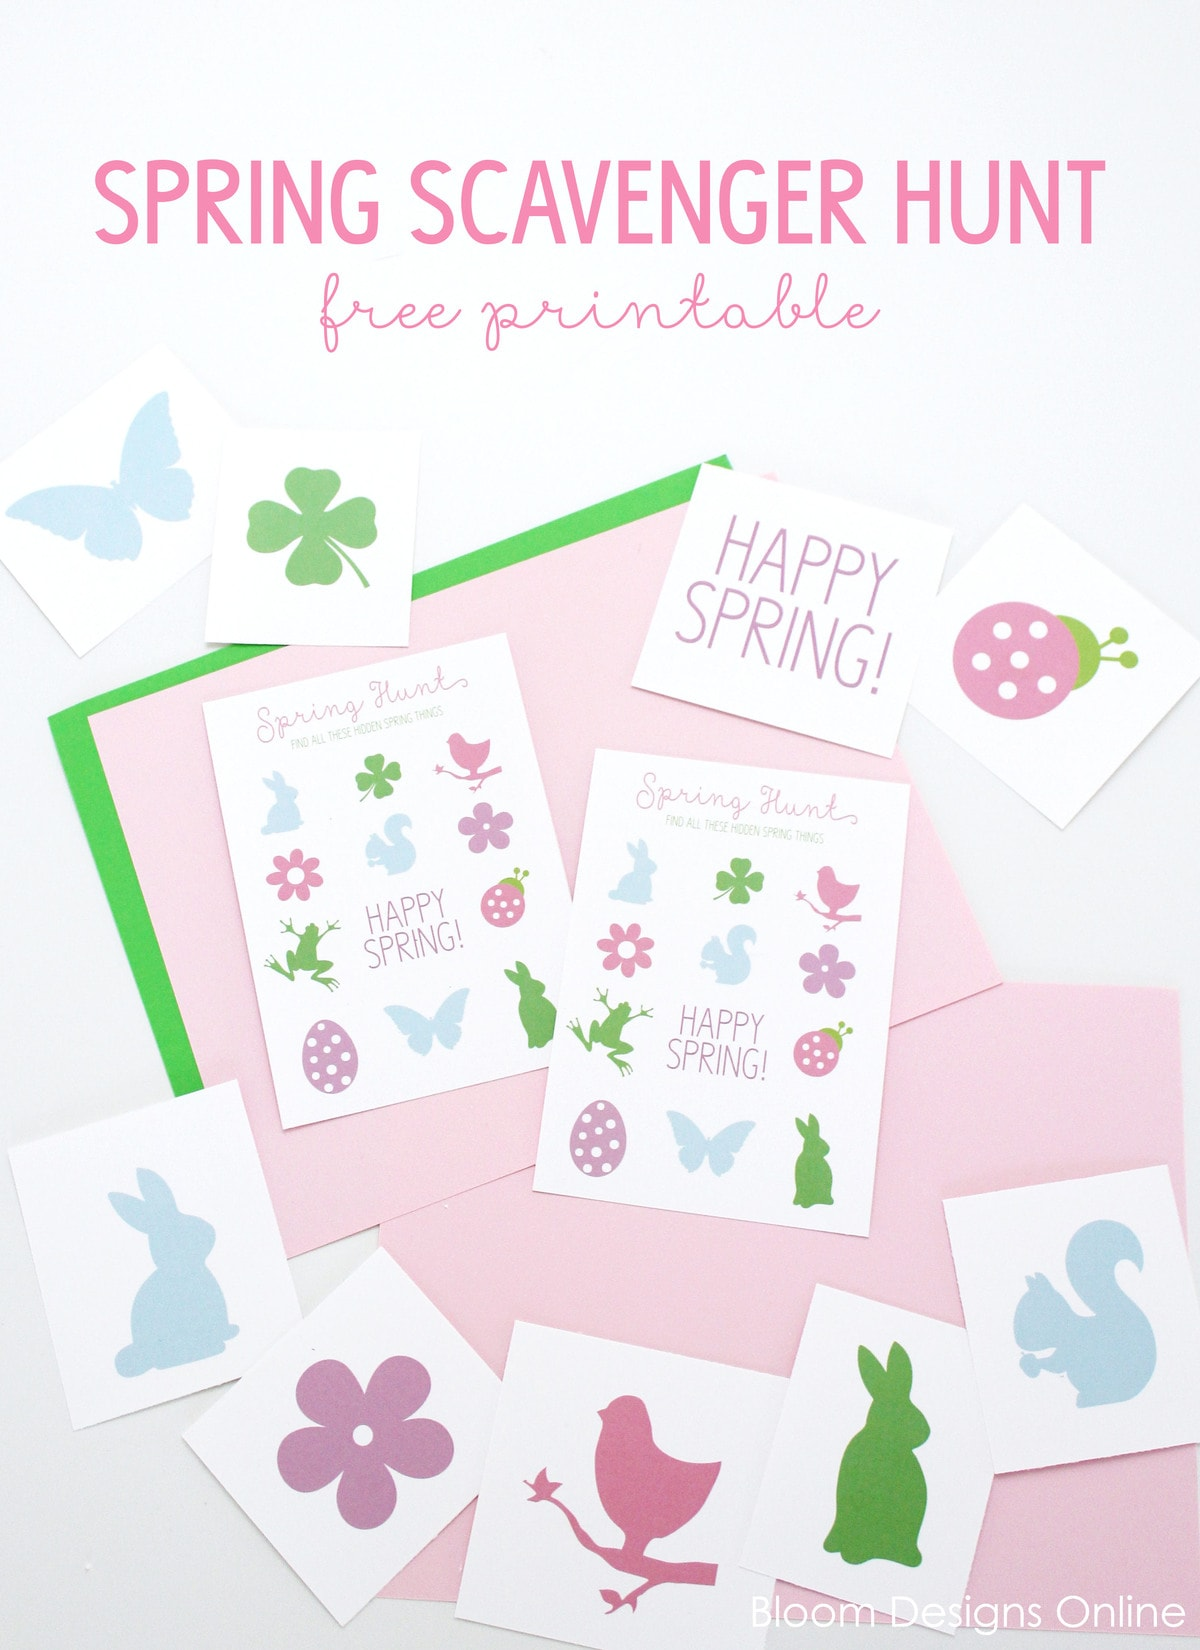 FREE Spring Scavenger Hunt printable - a fun and simple activity for the kids to do in the Spring or even inside on a rainy day!